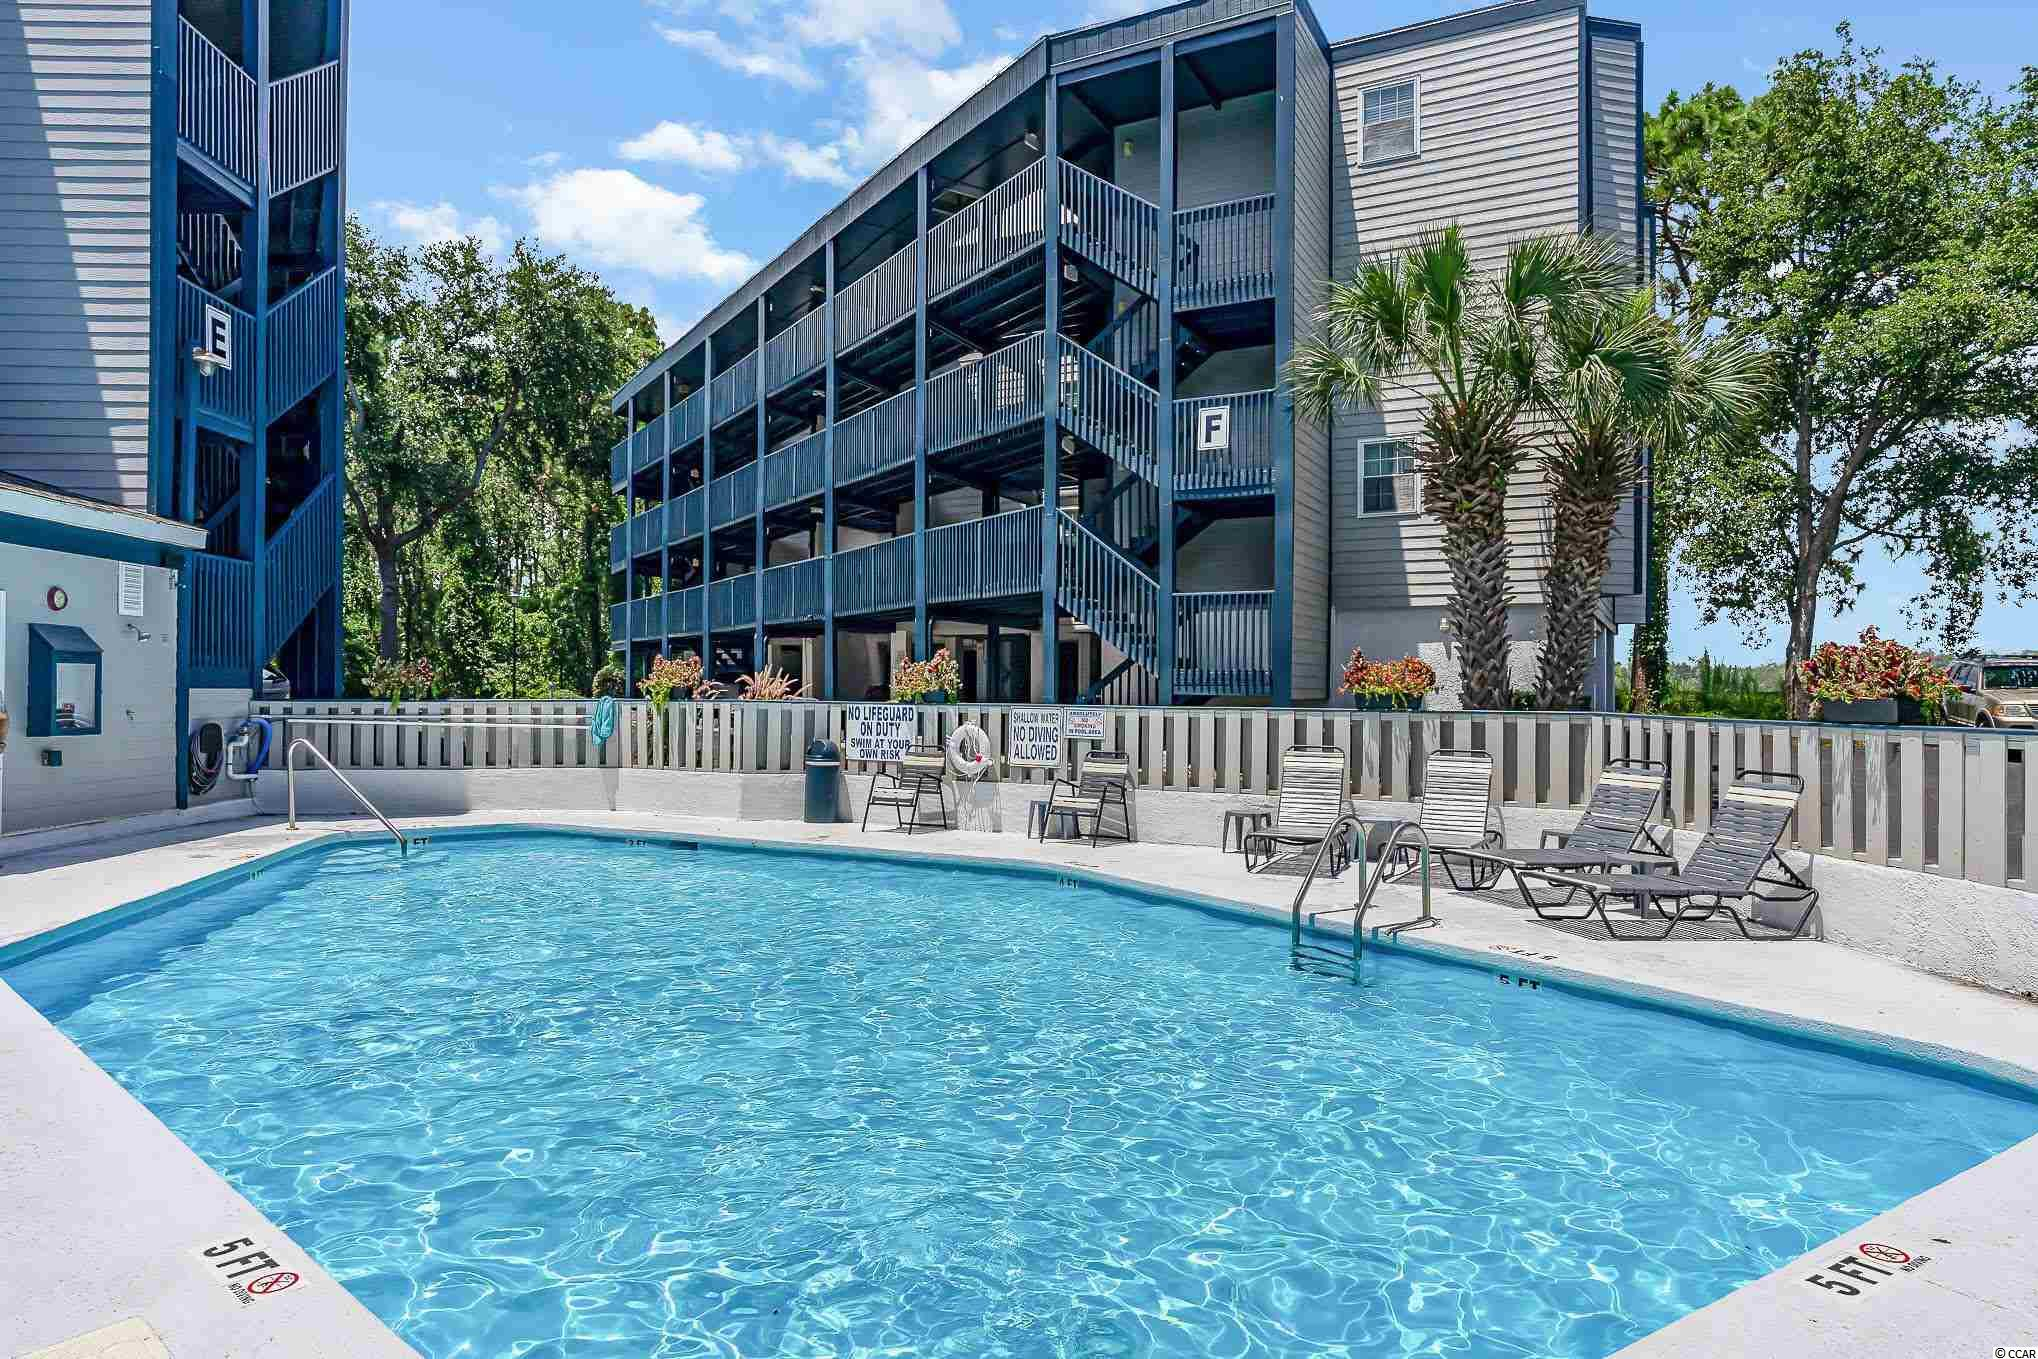 Move in ready, third floor end unit is in excellent condition and used as a primary residence. Located in a 72 unit (no elevator) complex in the Crescent Beach area of North Myrtle Beach. Right around the corner from the Community Center, the Park and Beechwood Golf Club and 2 miles from Main Street in NMB. Open floor plan with laminate flooring in living area/kitchen/master bedroom; screened porch extends the living space to the outdoors where you can enjoy the breeze and privacy in this top floor unit. Built in storage in the Master bedroom and stackable washer/dryer in 2nd bathroom. Sold furnished with the exception of few items. Parking is under building and the exterior of the building is newly painted. Community pool and grill area. HOA includes water/sewer; basic cable and internet; building insurance; pest control. All information is deemed reliable but not guaranteed. Buyer responsible for verification.